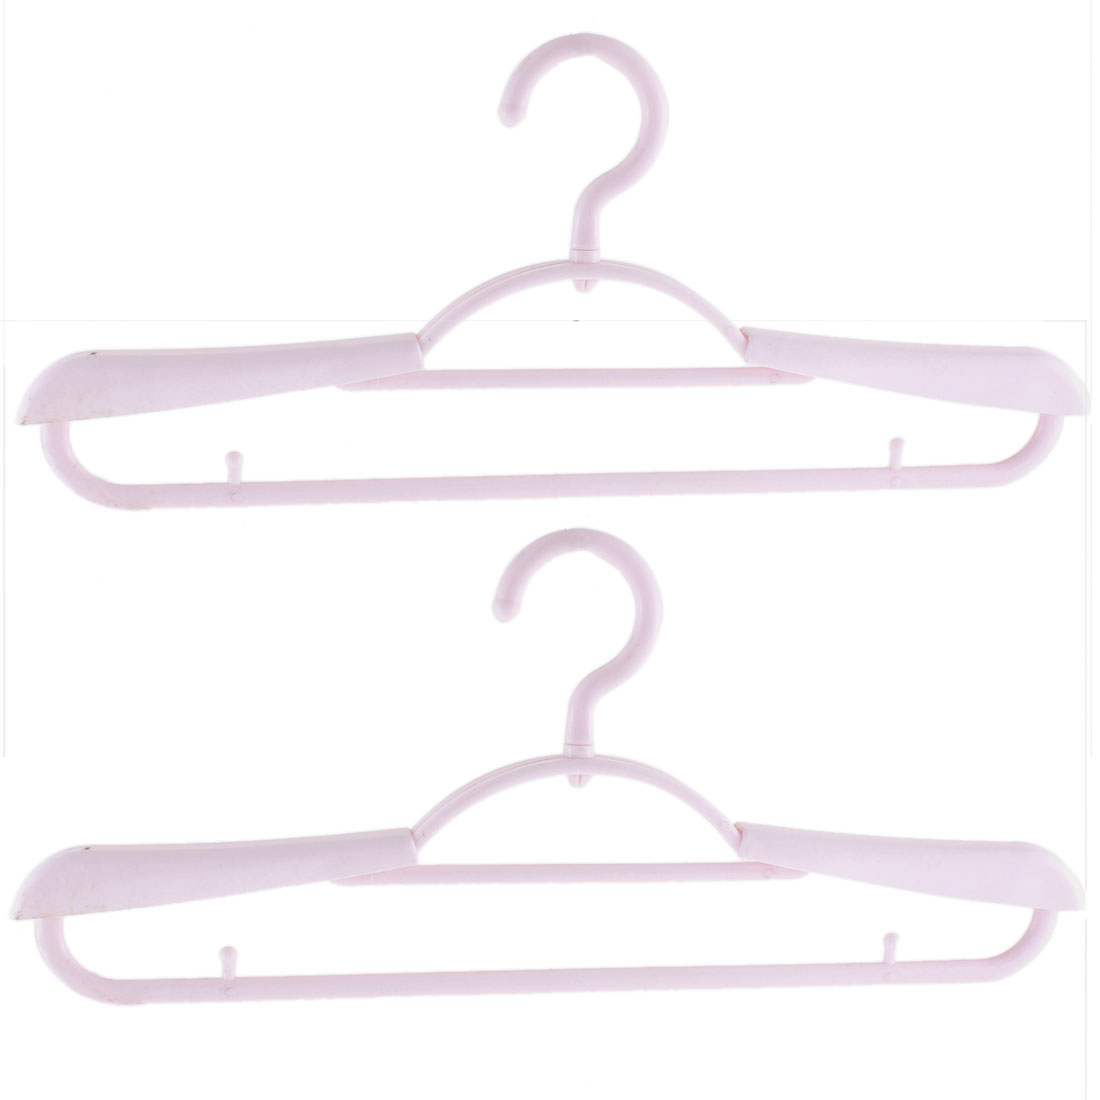 2pcs Plastic Space Saving Non-Slip Household Clothes Clothing Hanger Pink